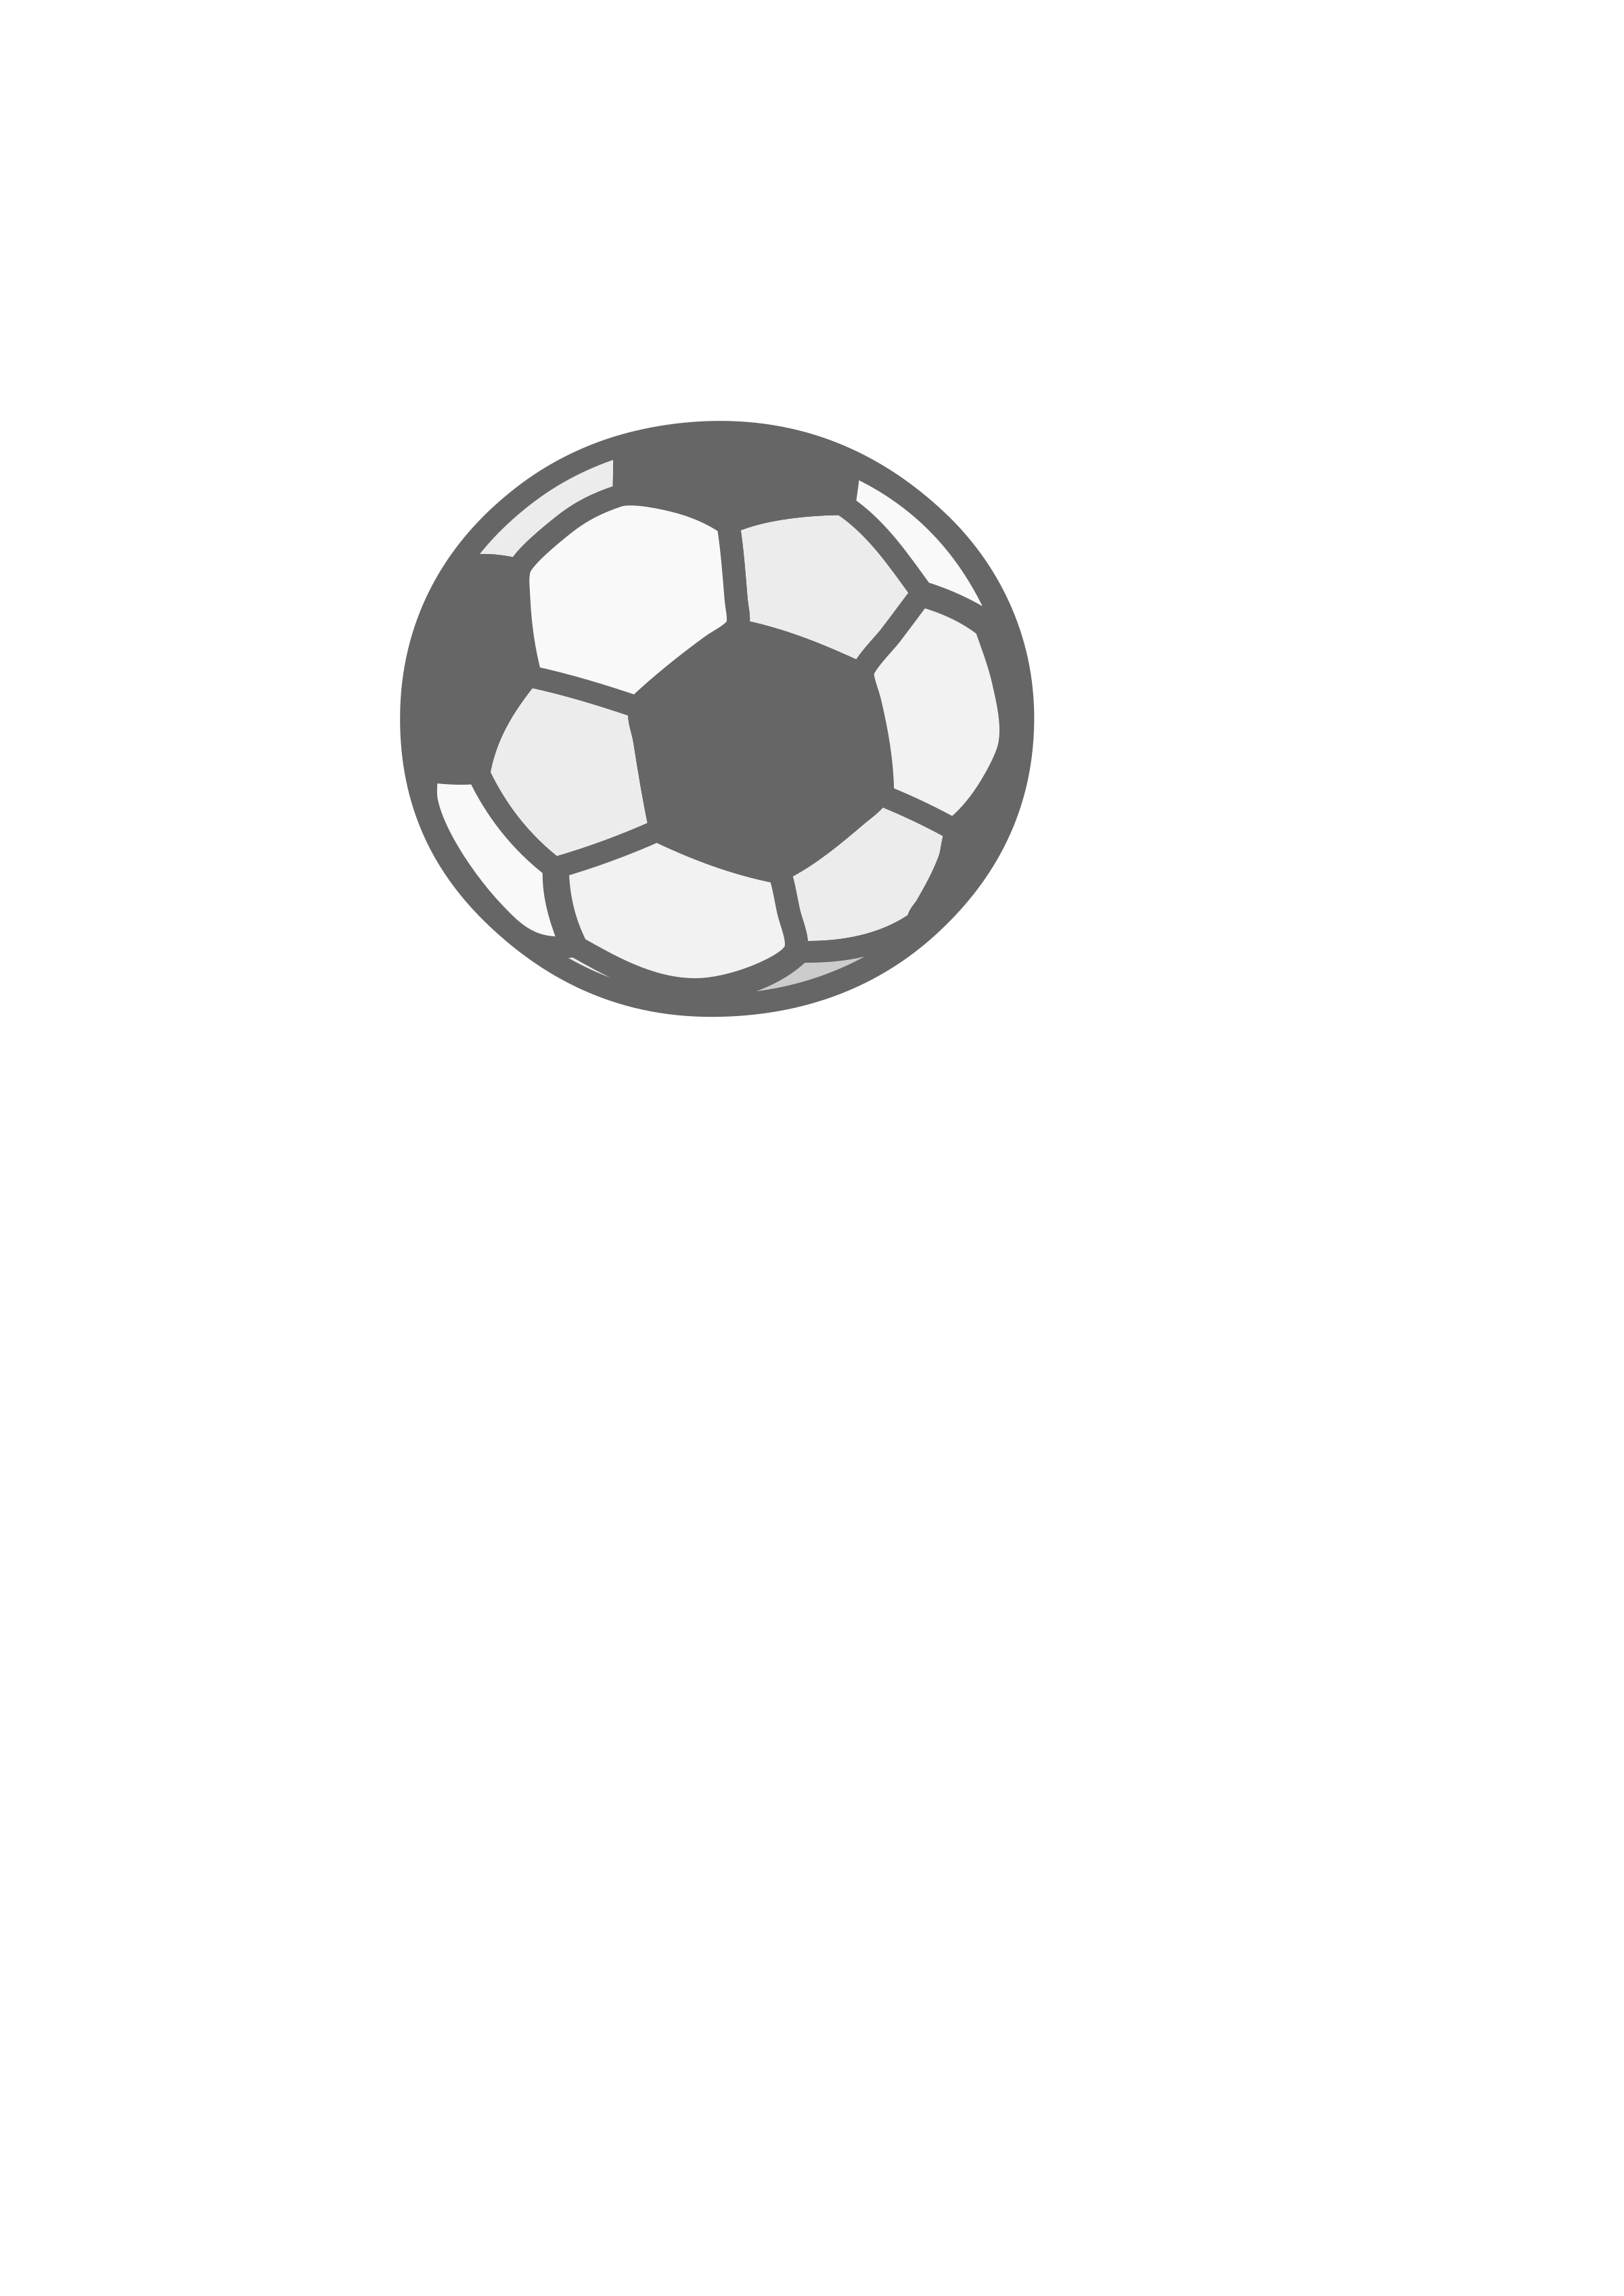 White soccer ball png. Icons free and downloads